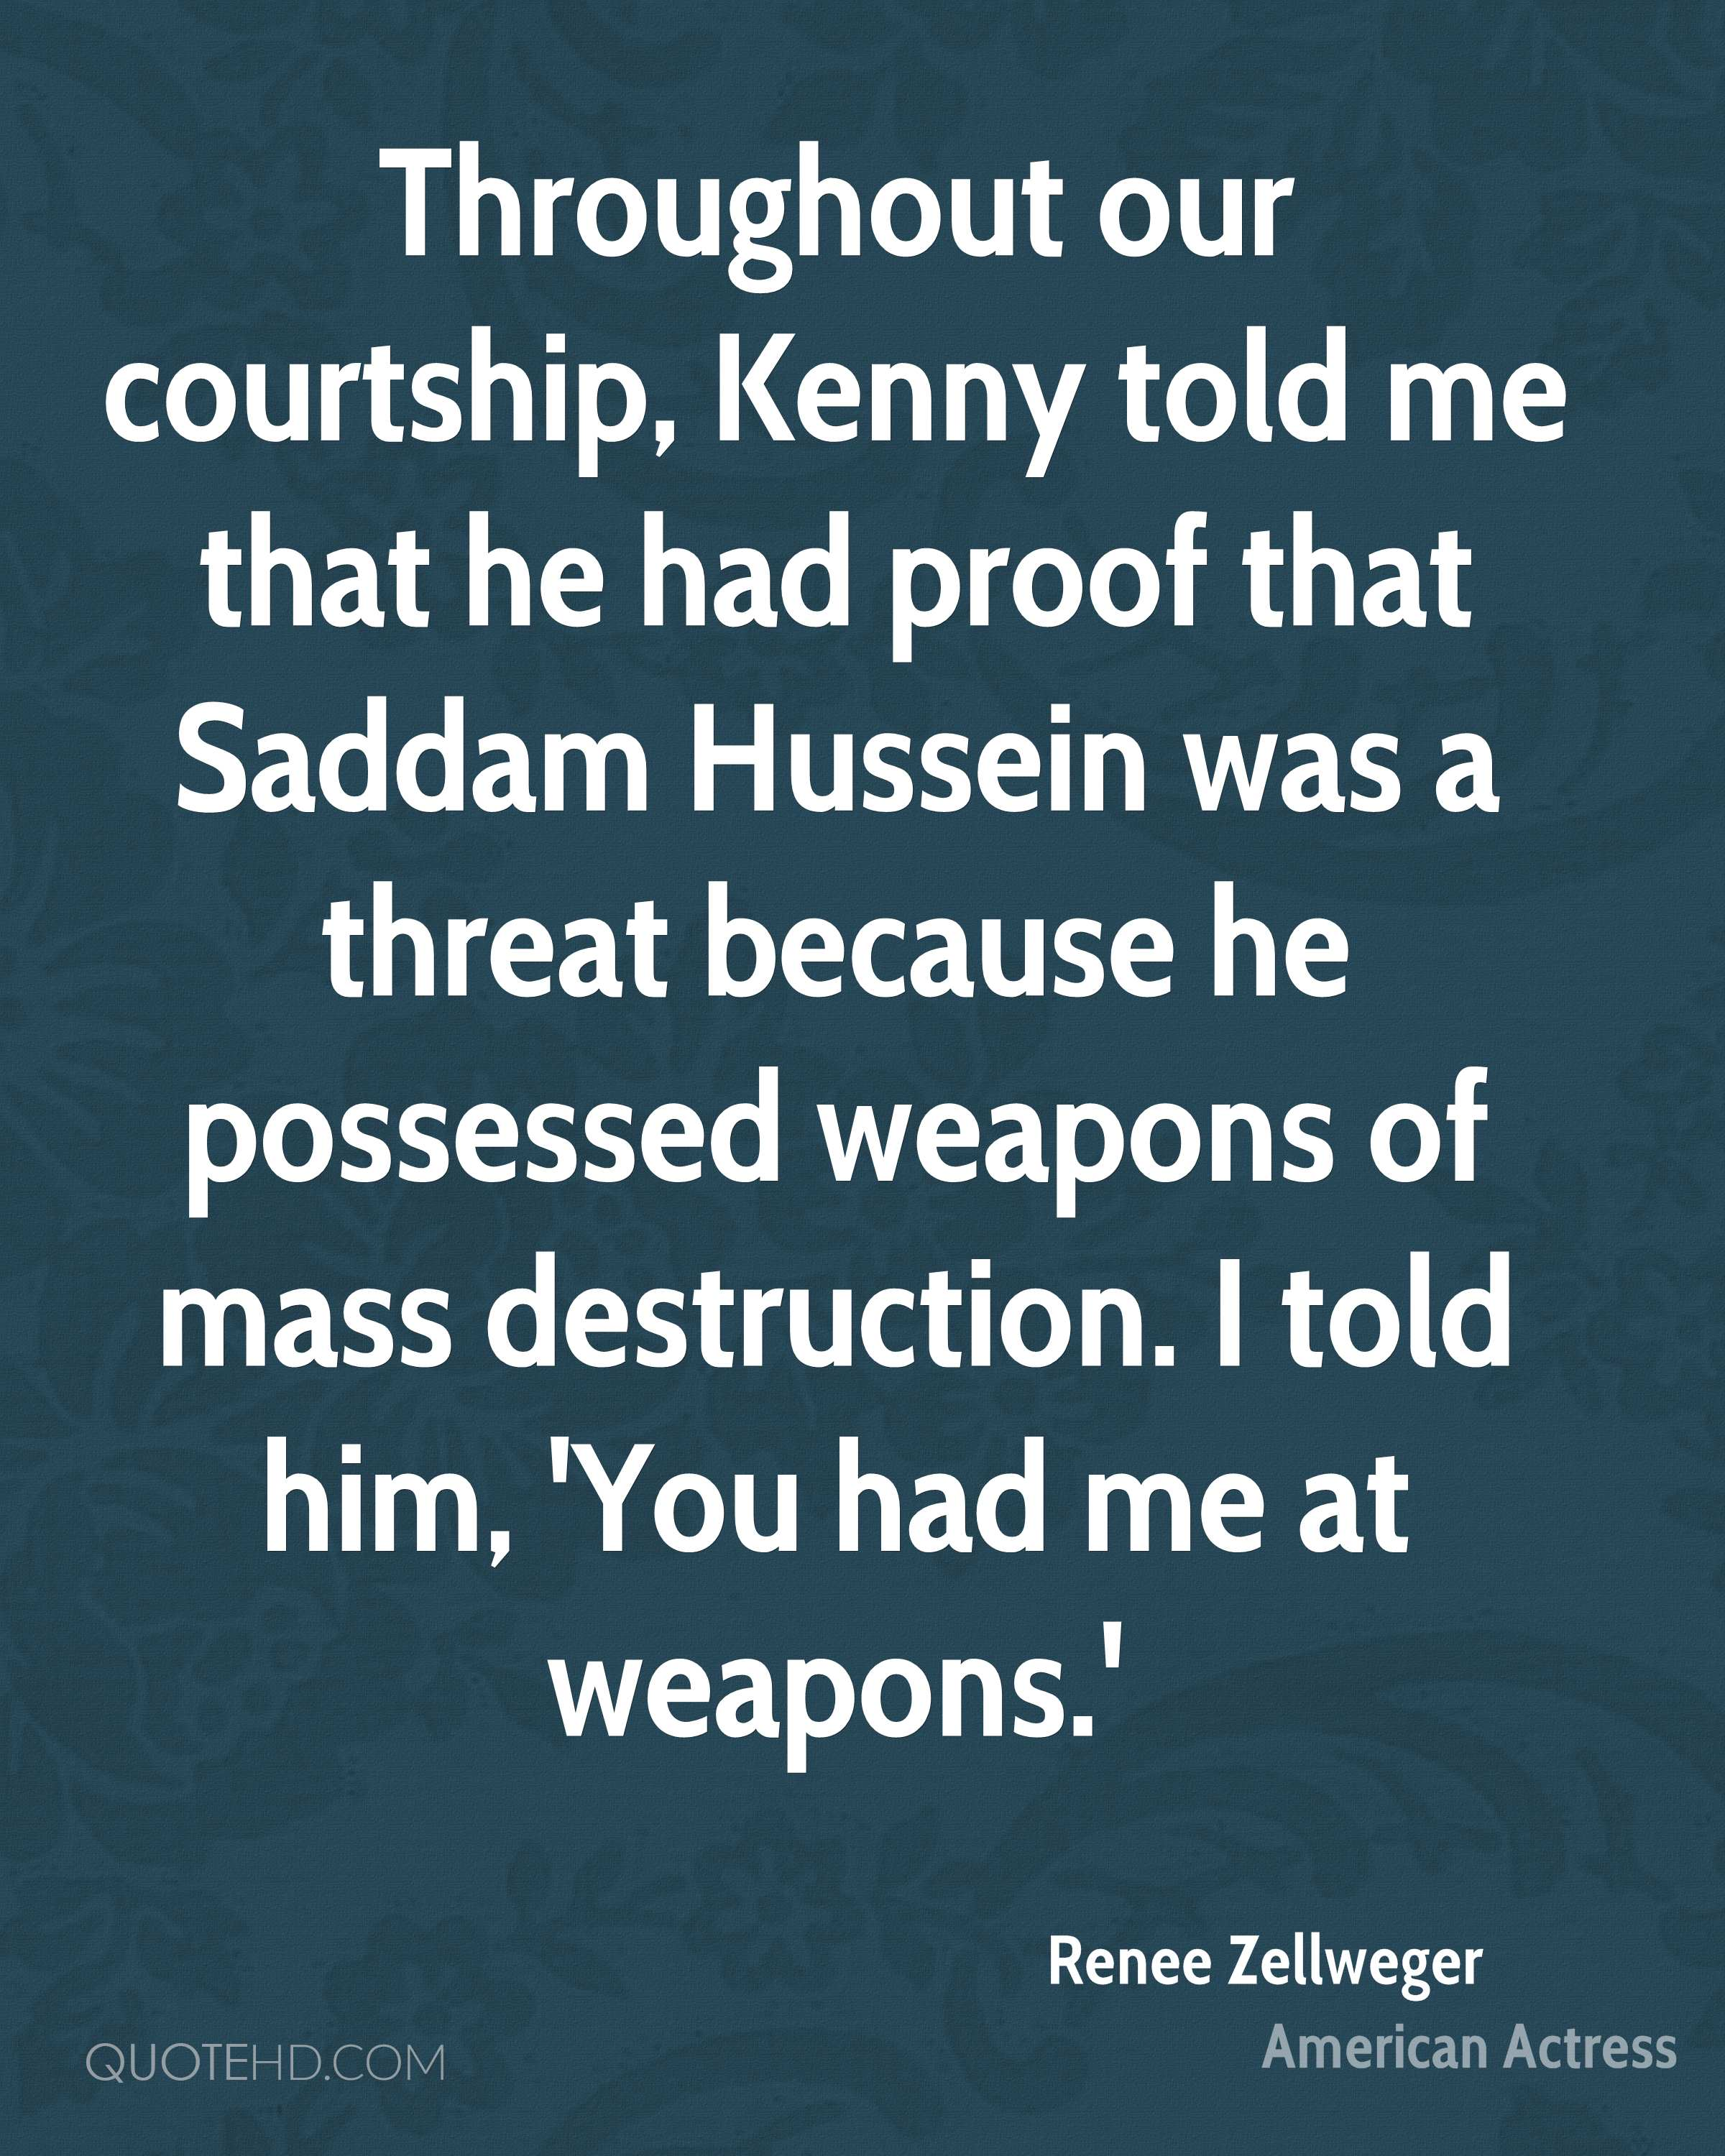 Throughout our courtship, Kenny told me that he had proof that Saddam Hussein was a threat because he possessed weapons of mass destruction. I told him, 'You had me at weapons.'